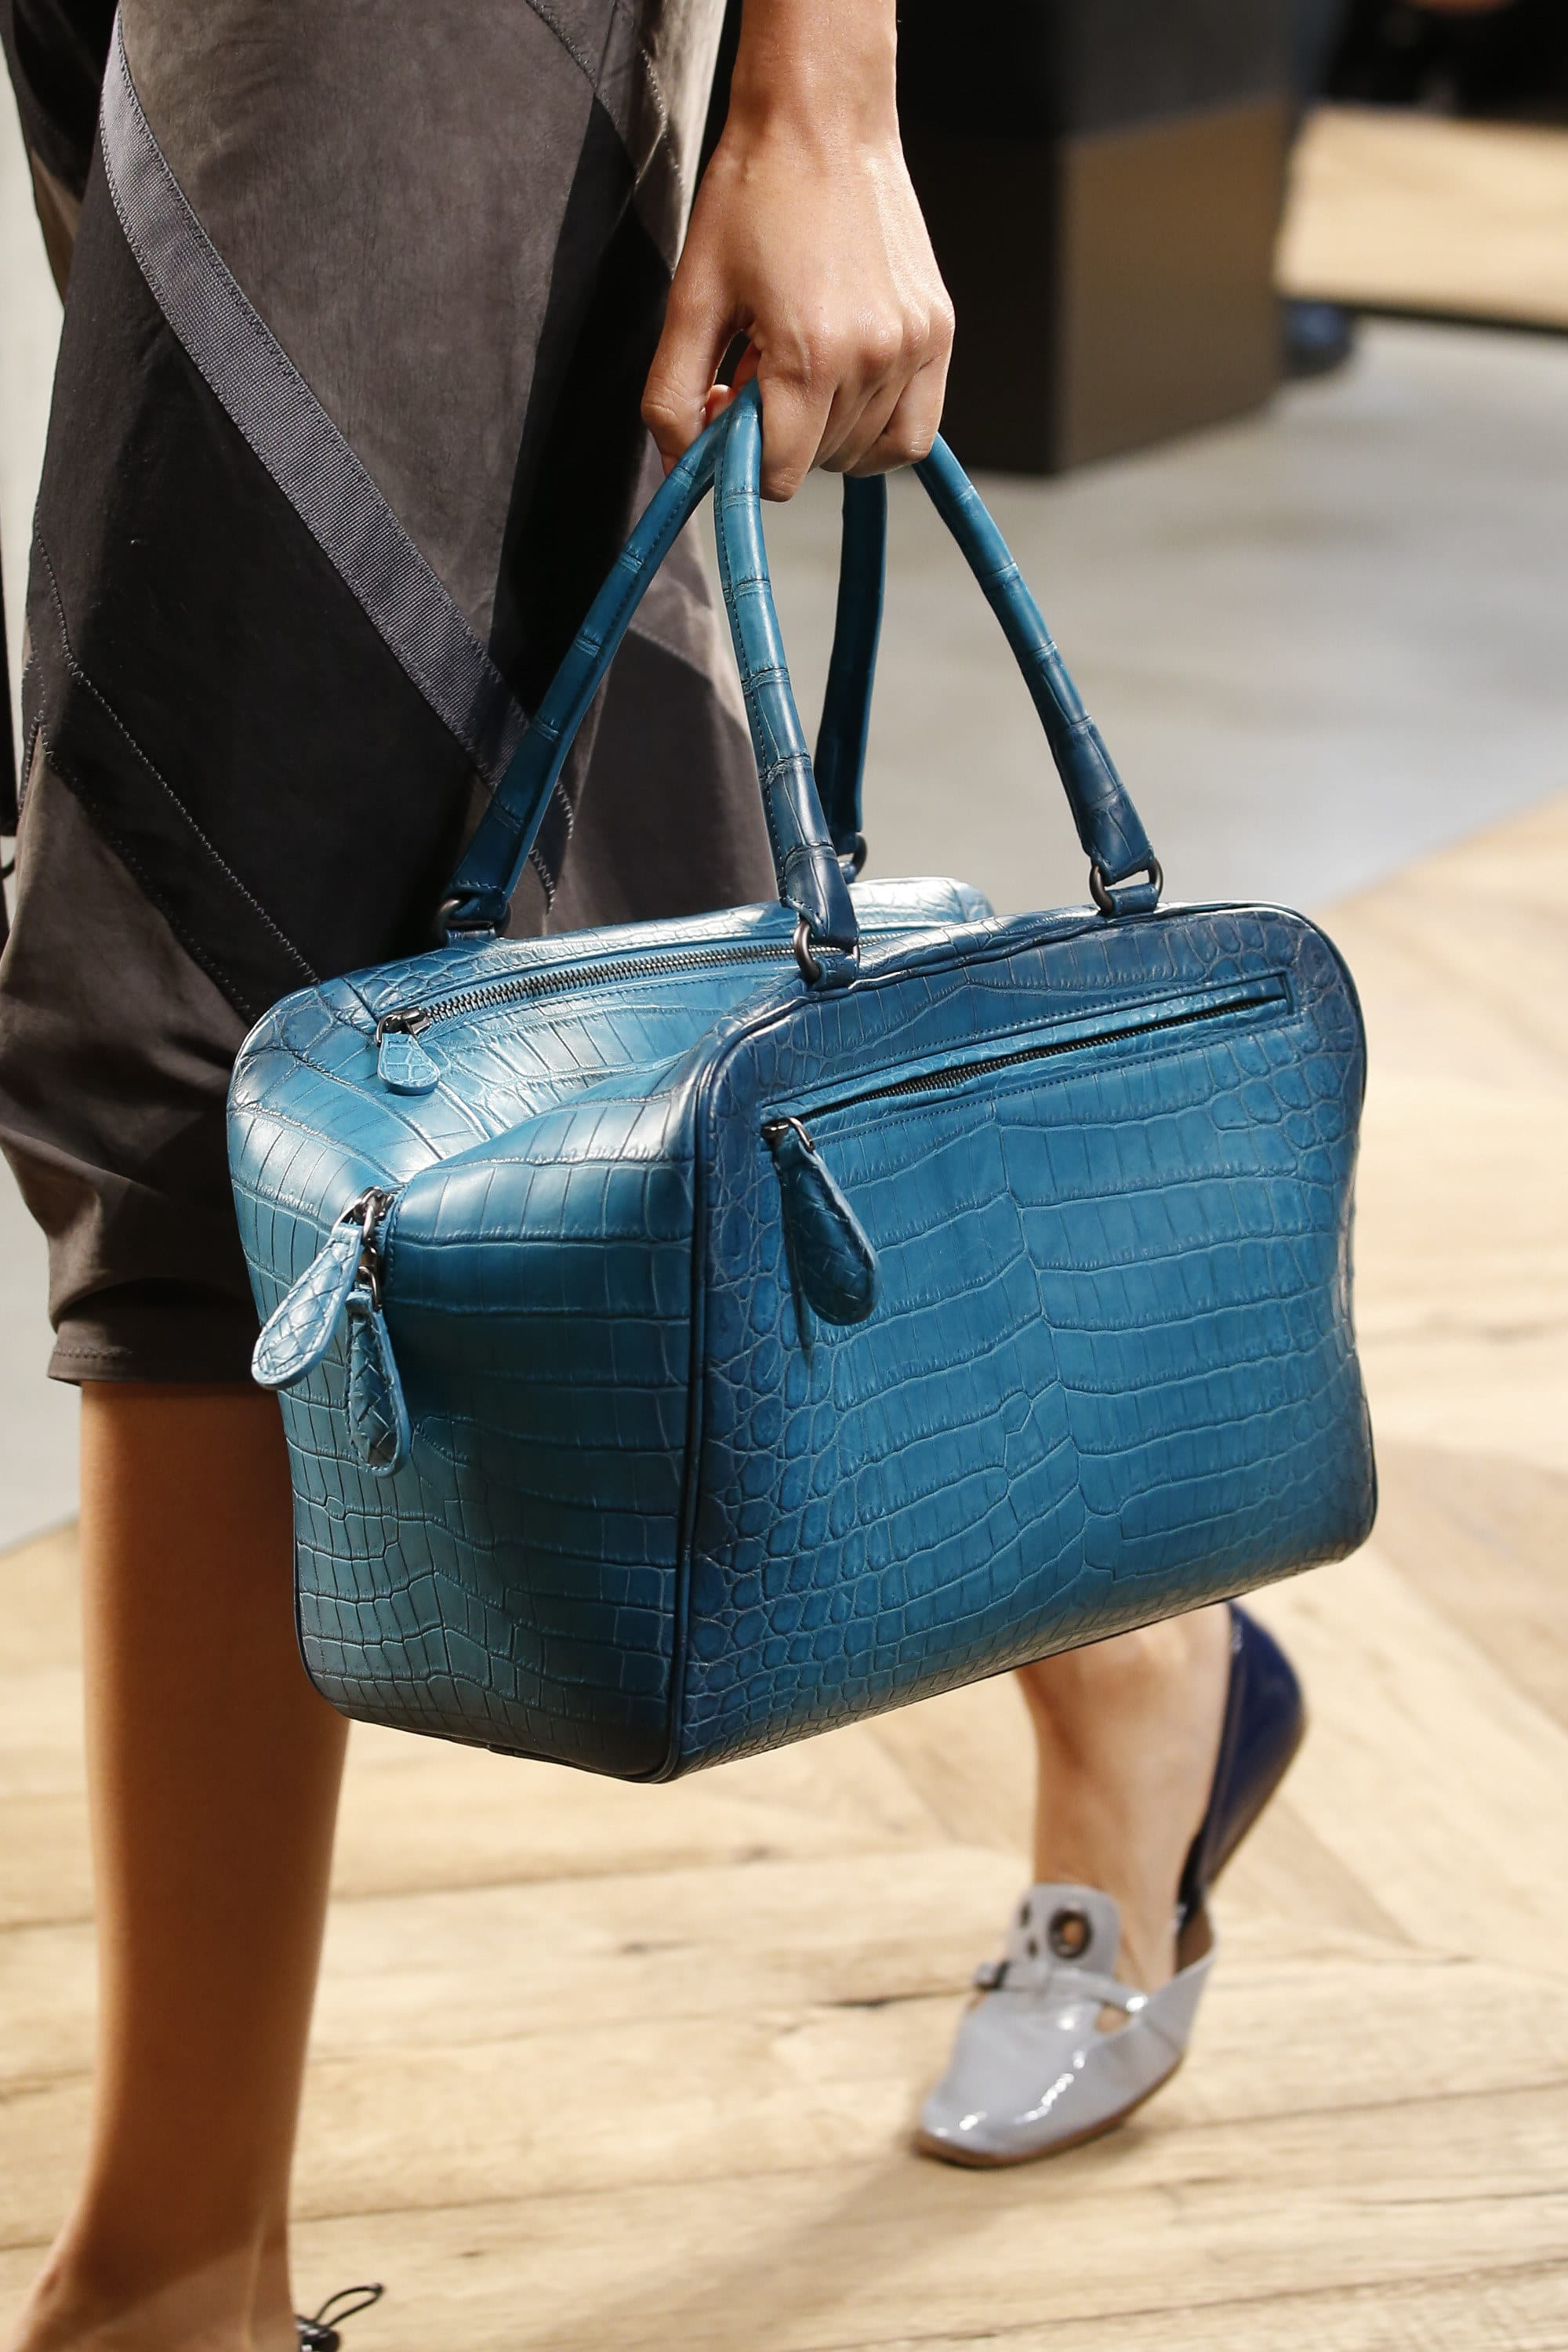 Fendi spring summer 2015 runway bag collection spotted fashion - Bottega Veneta Blue Crocodile Brera Bag Spring 2016